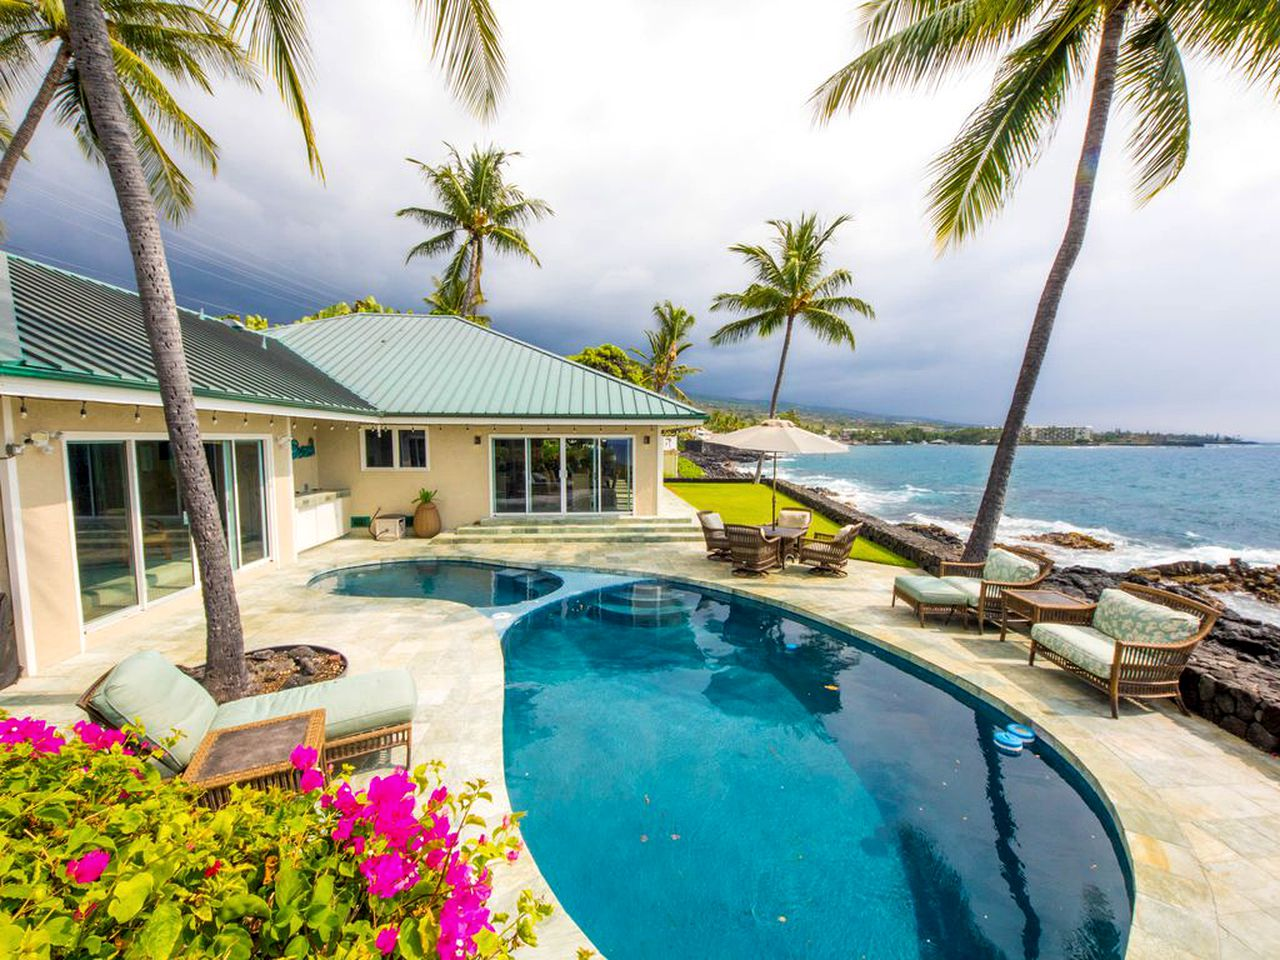 Beach Houses (Kailua-Kona, Hawaii, United States)